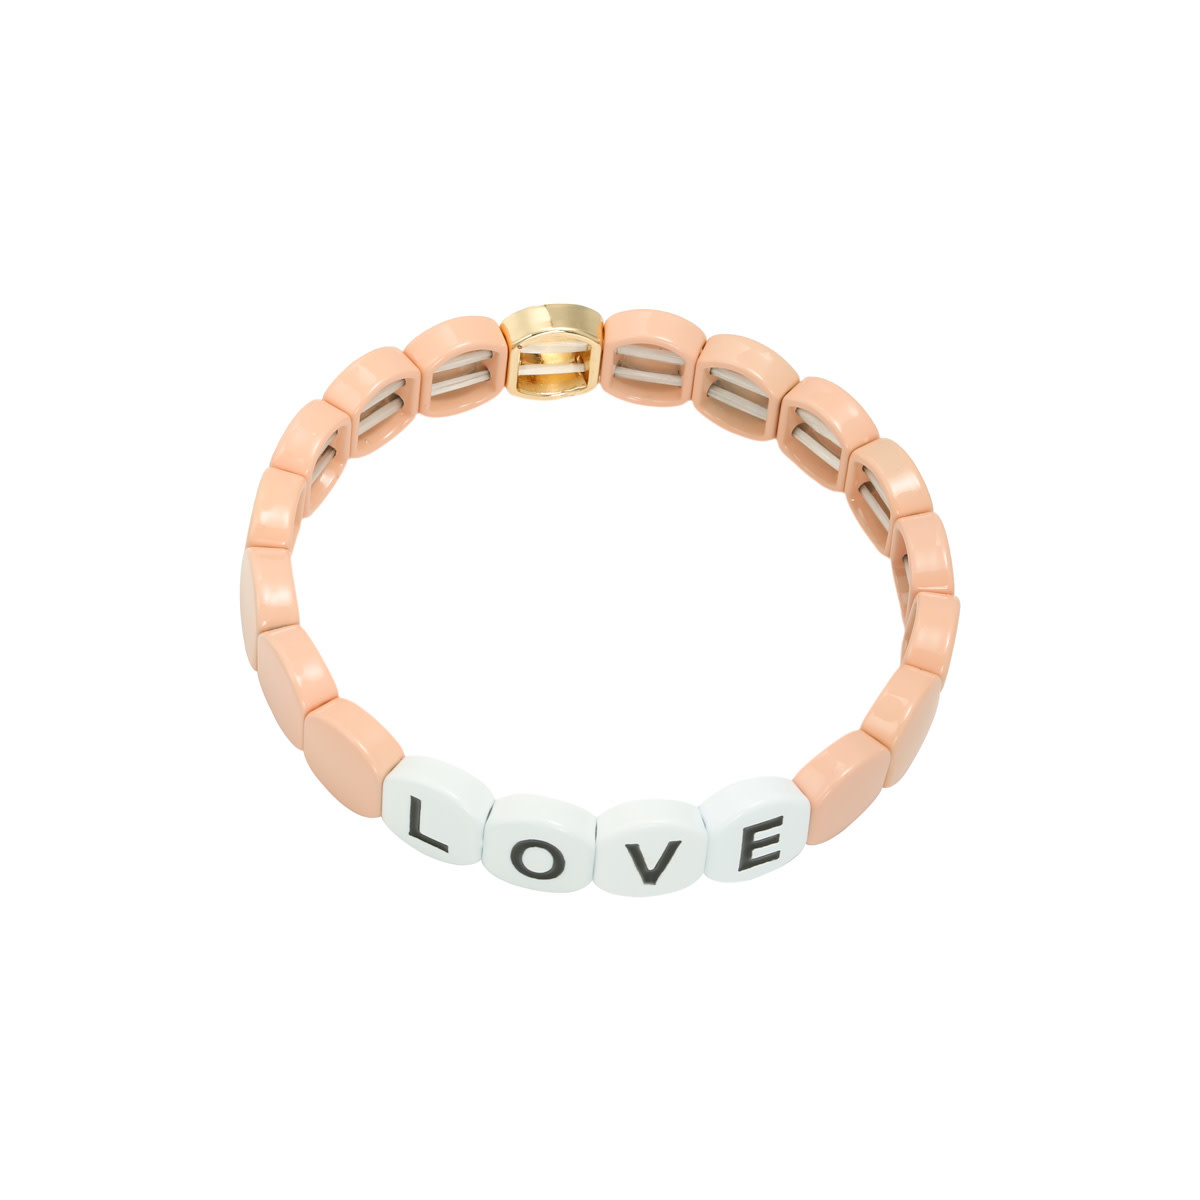 With love With love bracelet Colorfol LOVE - pink